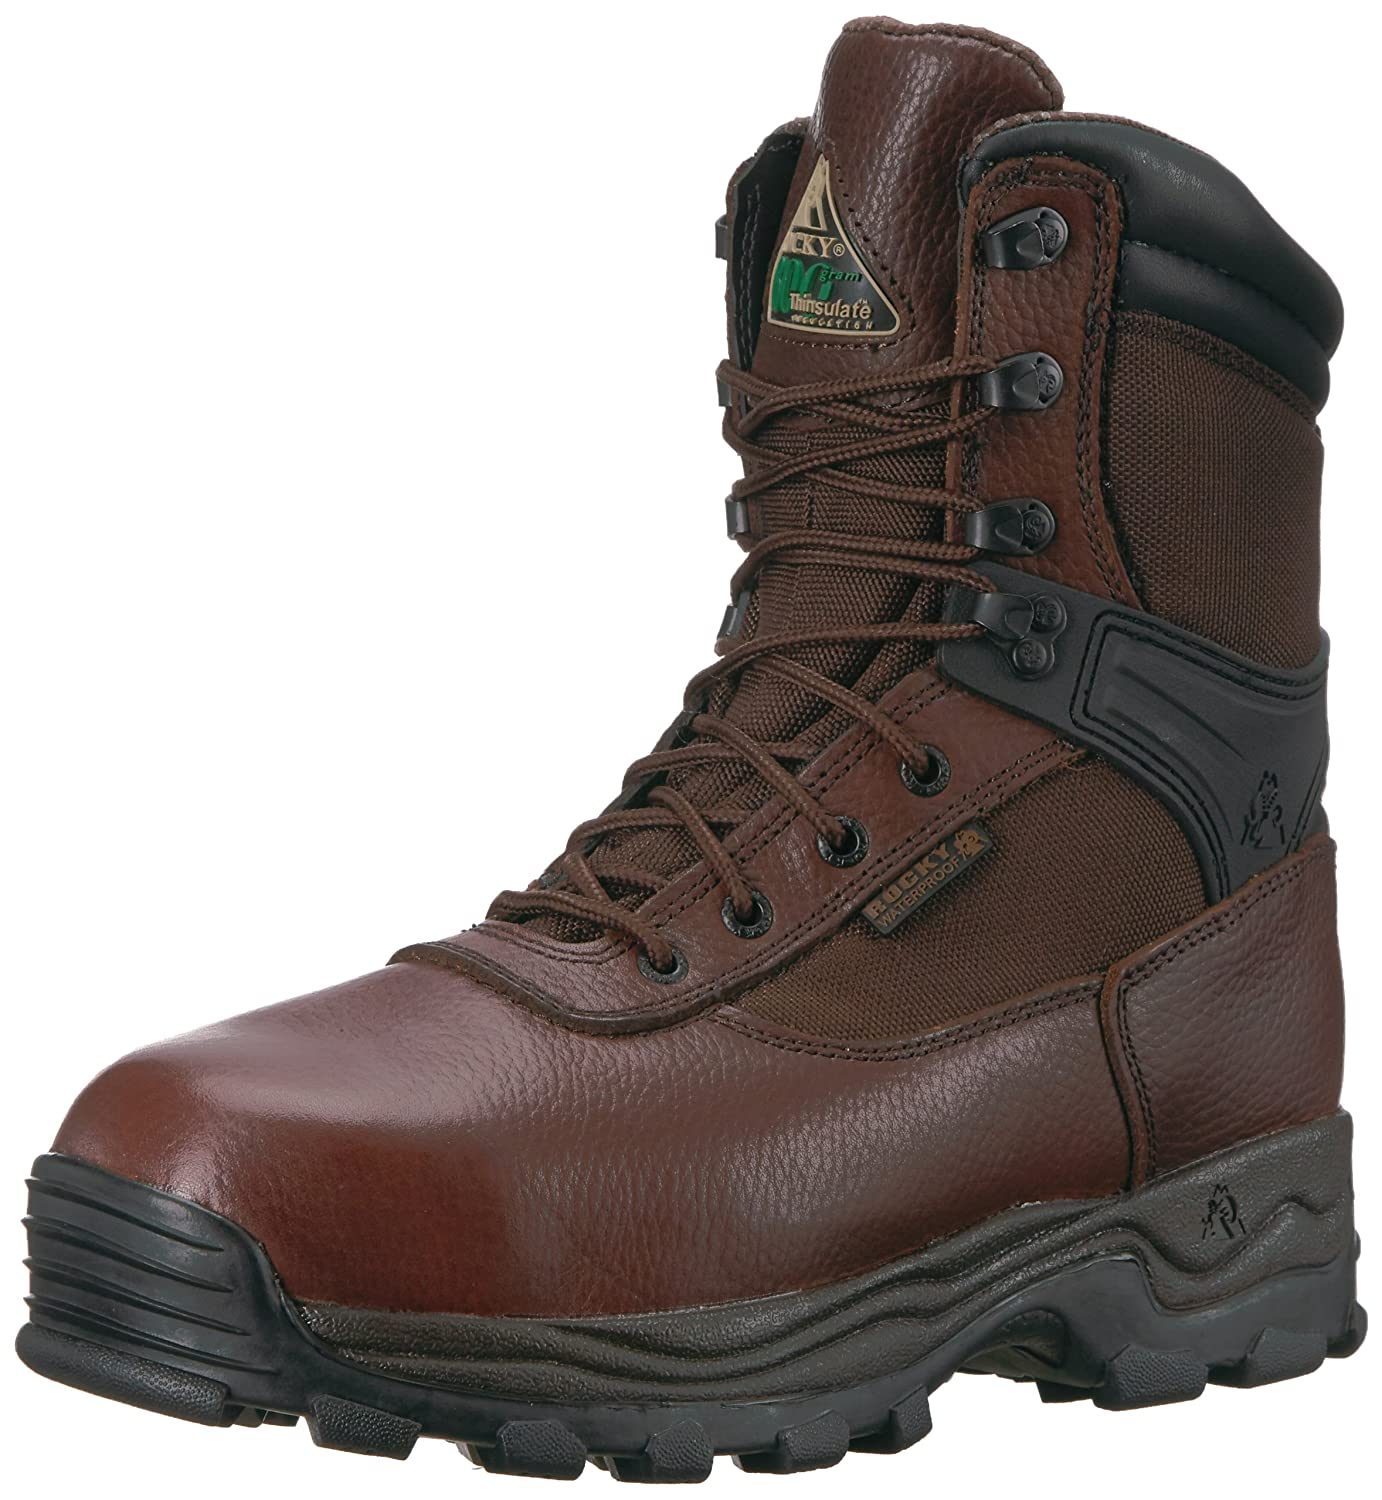 ロッキーMen 's Sport Utility Pro Waterproof Work Boot Steel Toe – fq0006486 B001HQB7XA 13 D(M) US|ダークチョコレート ダークチョコレート 13 D(M) US